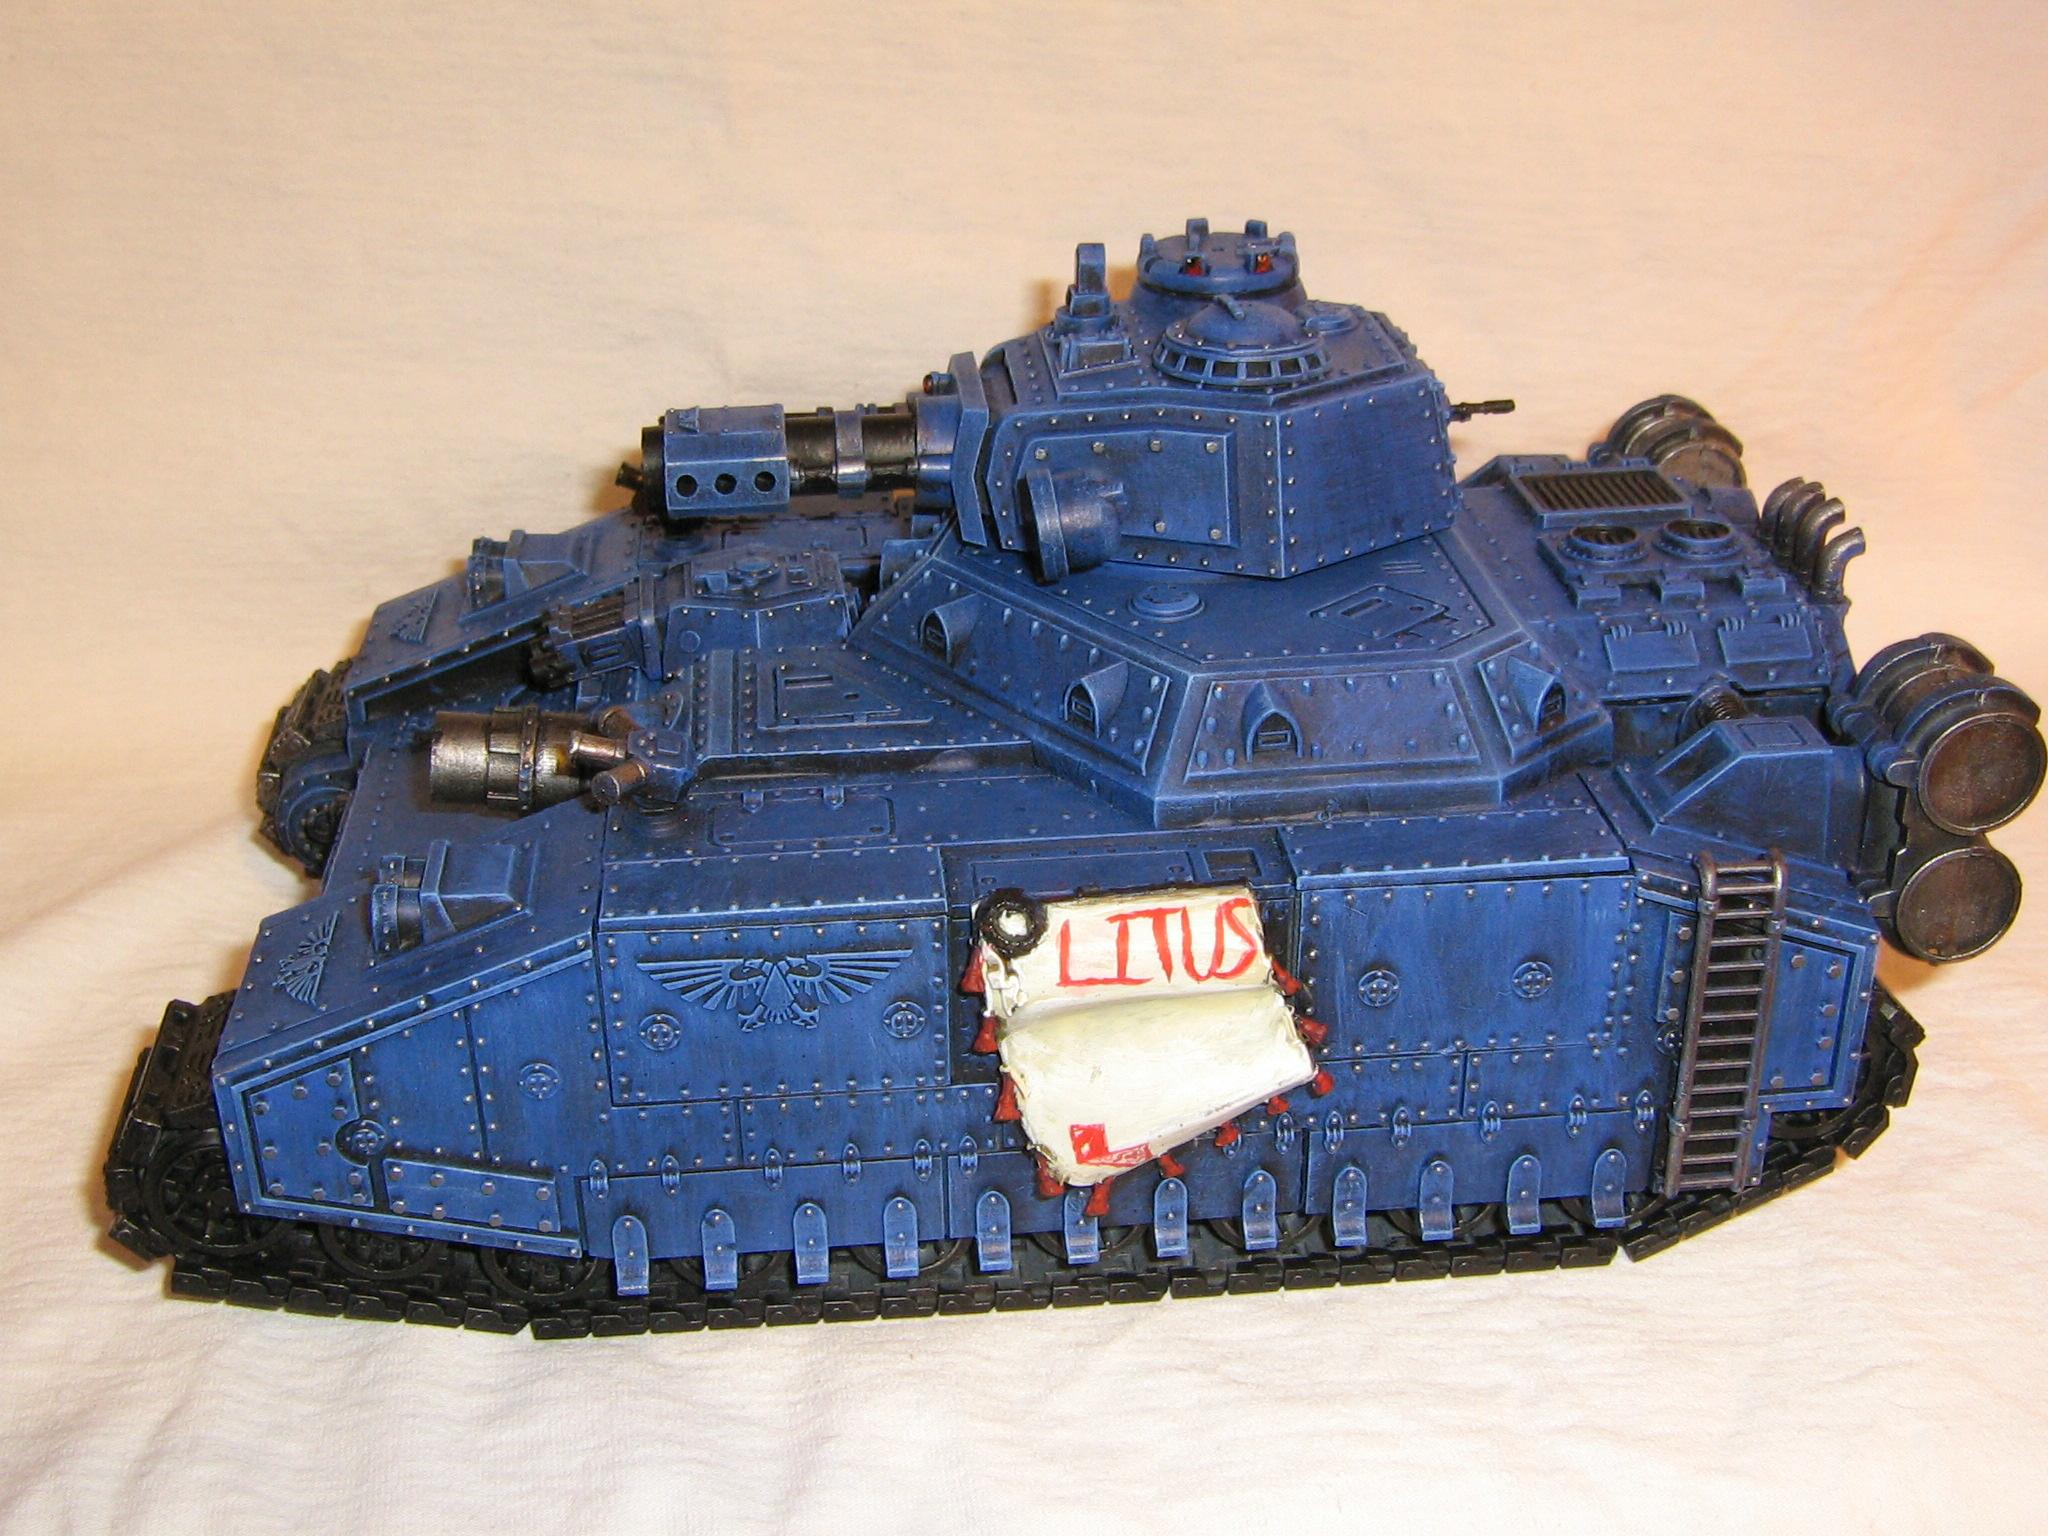 Baneblade, Imperial Guard, Super-heavy, Tank, Warhammer 40,000